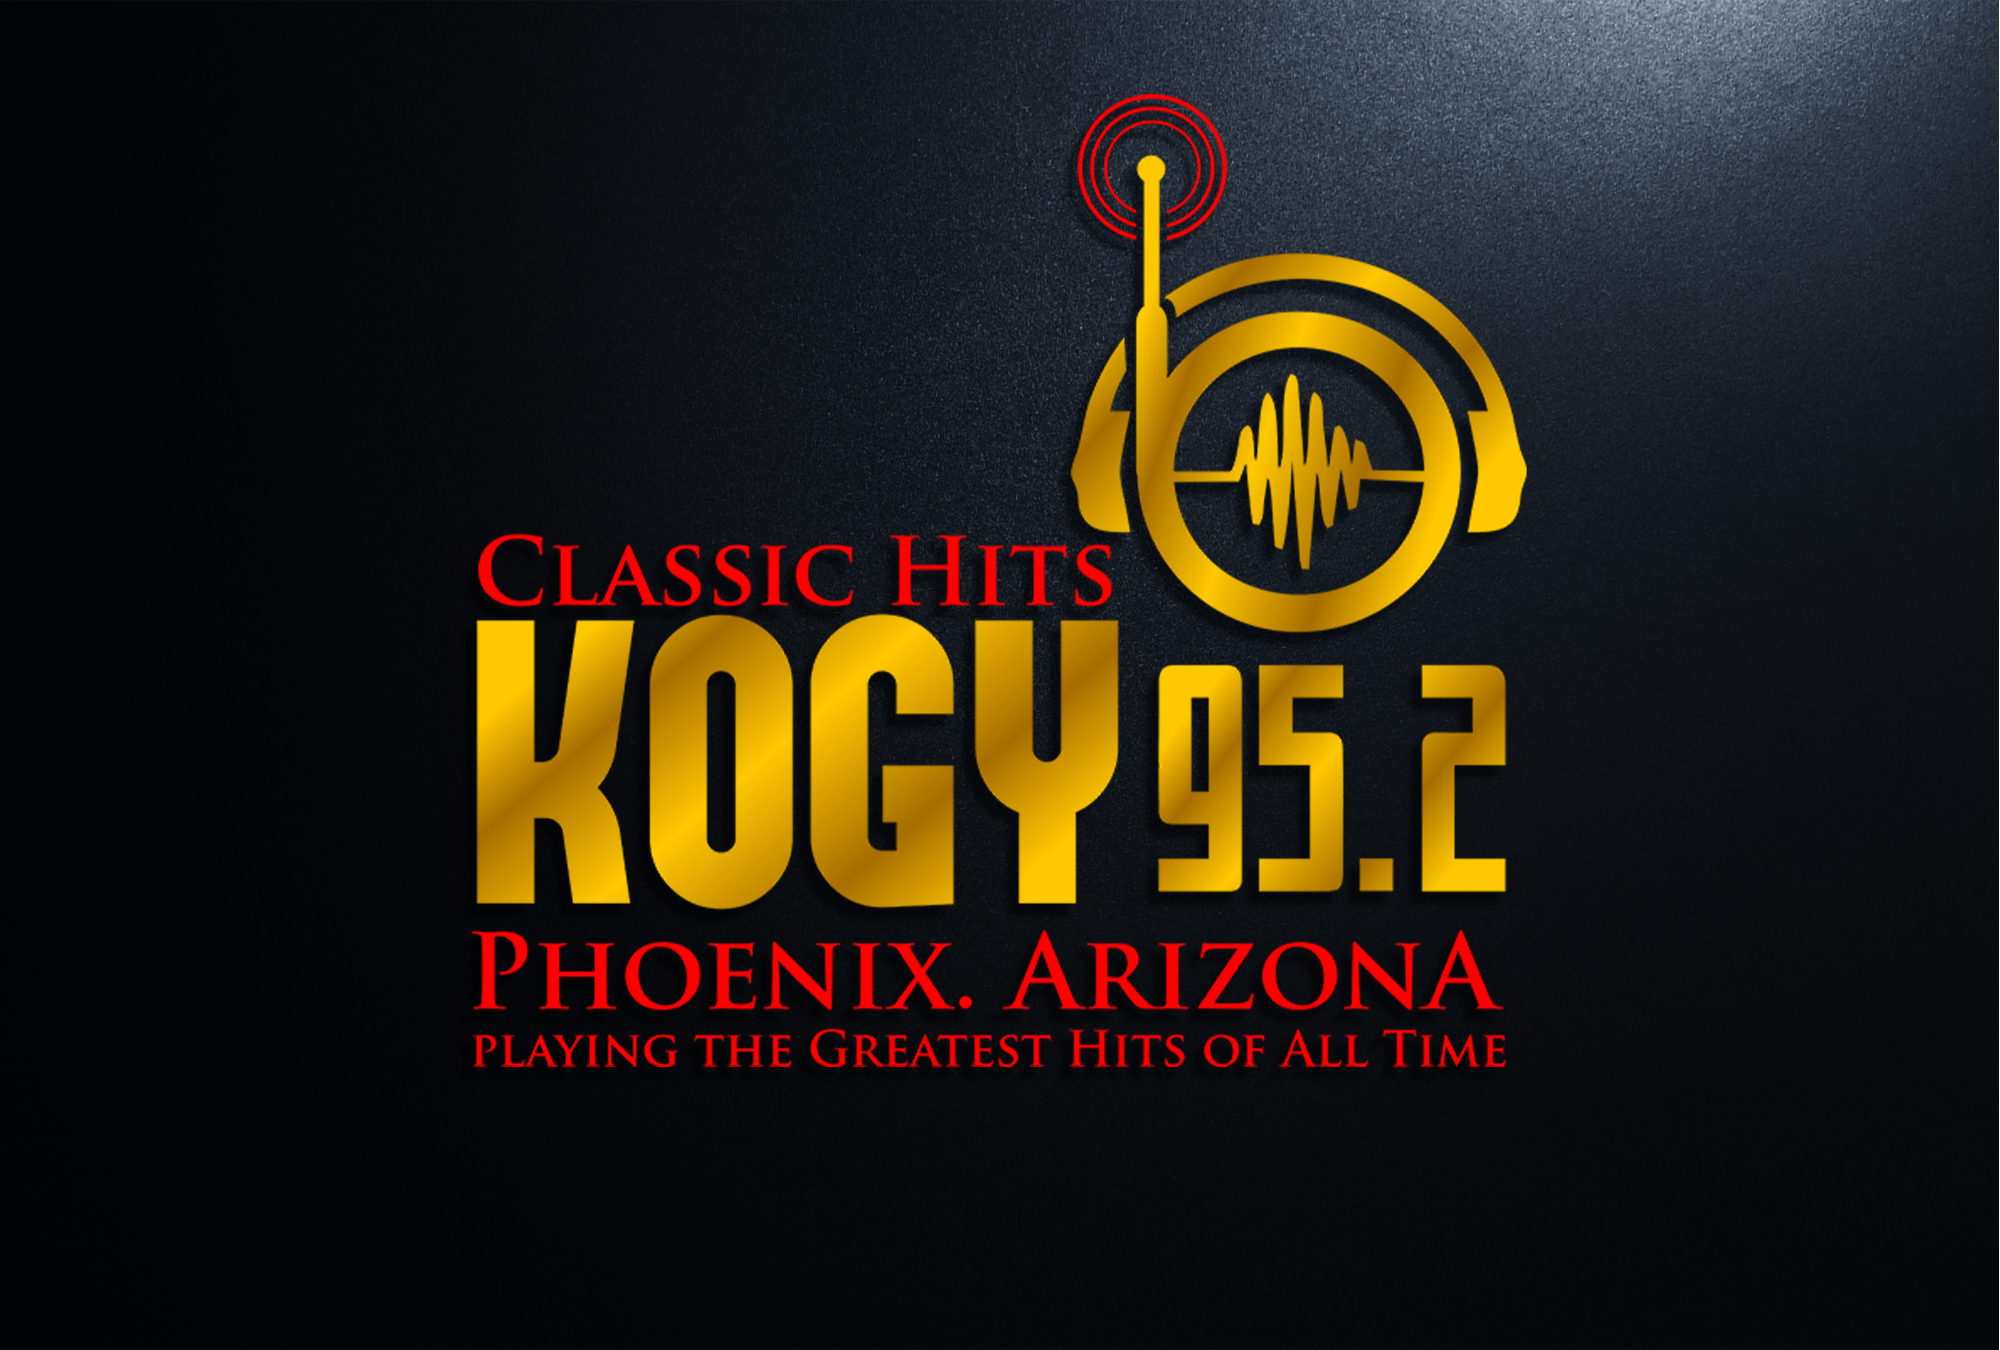 Art for Arizona Classic Hits Imager 9 by KOGY 95.2